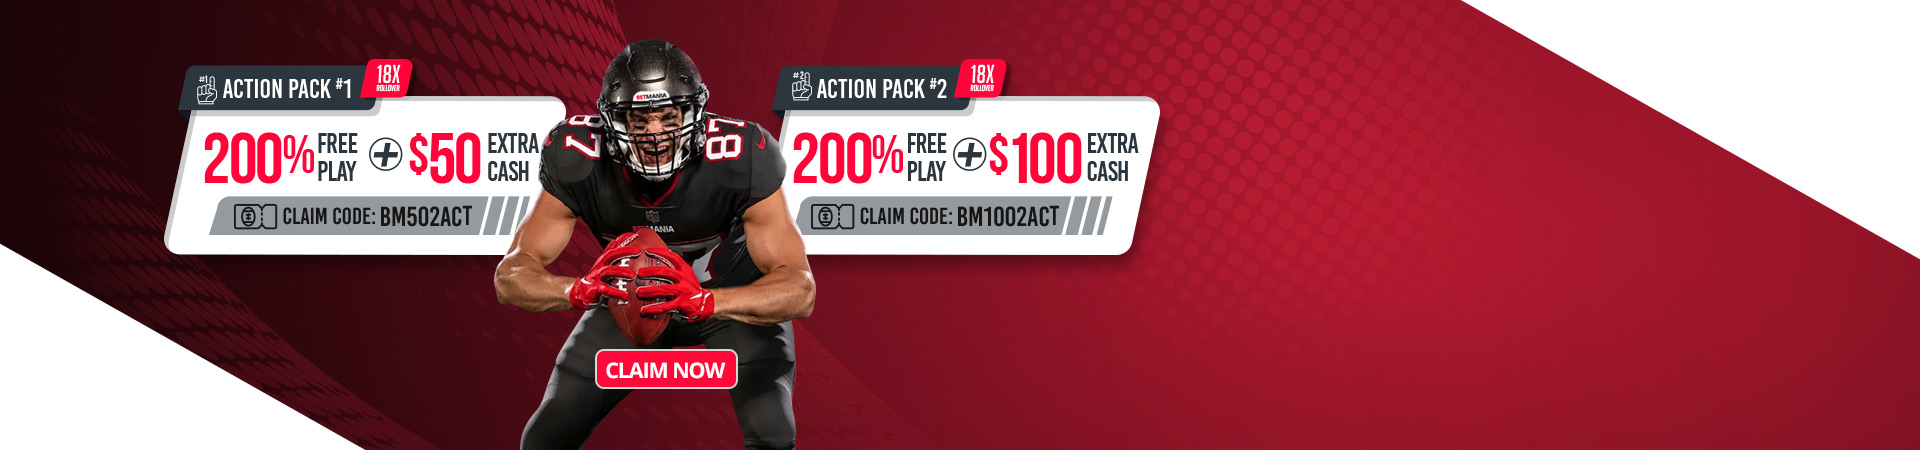 NFL Dual Pack